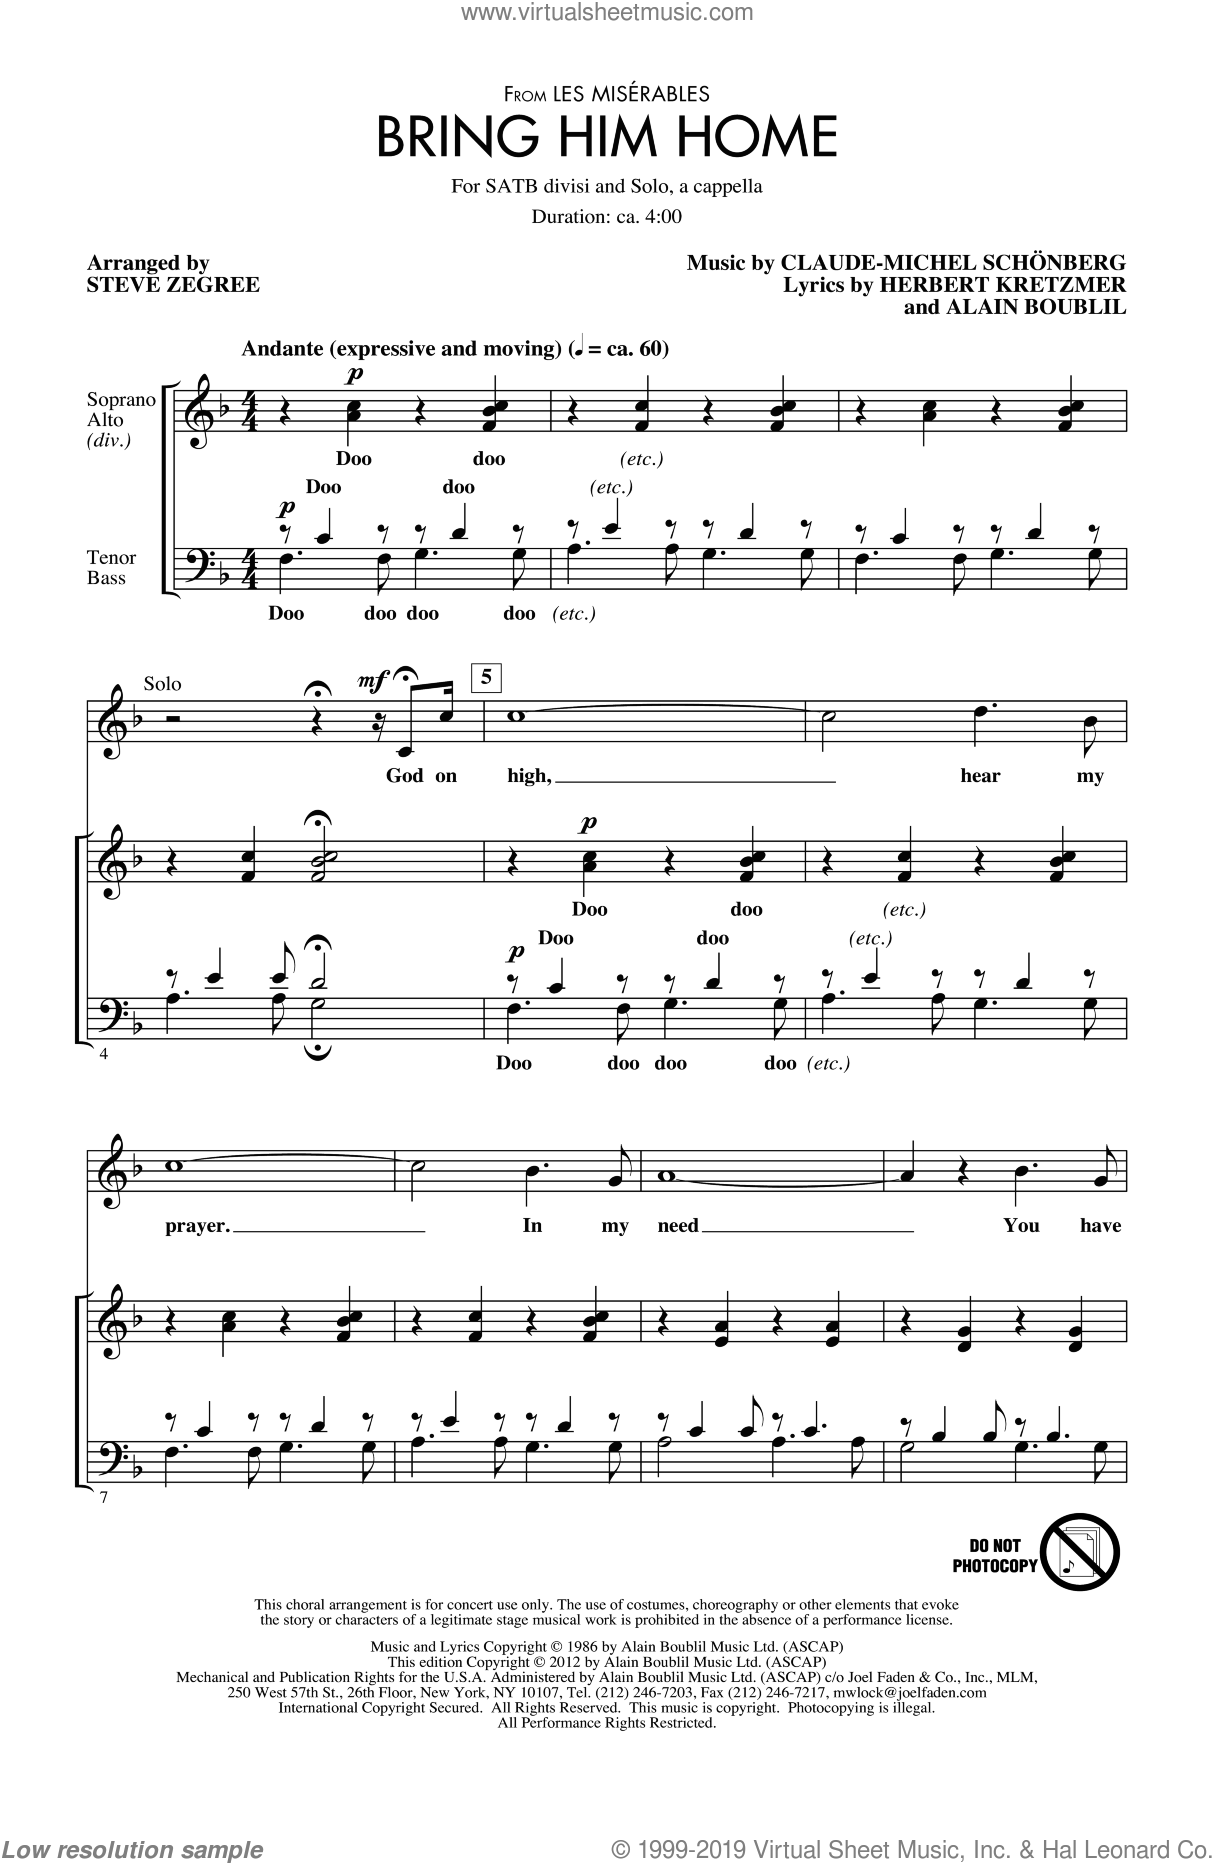 Bring Him Home sheet music for choir (SATB) by Alain Boublil, Claude-Michel Schonberg, Herbert Kretzmer, Les Miserables (Musical) and Steve Zegree. Score Image Preview.